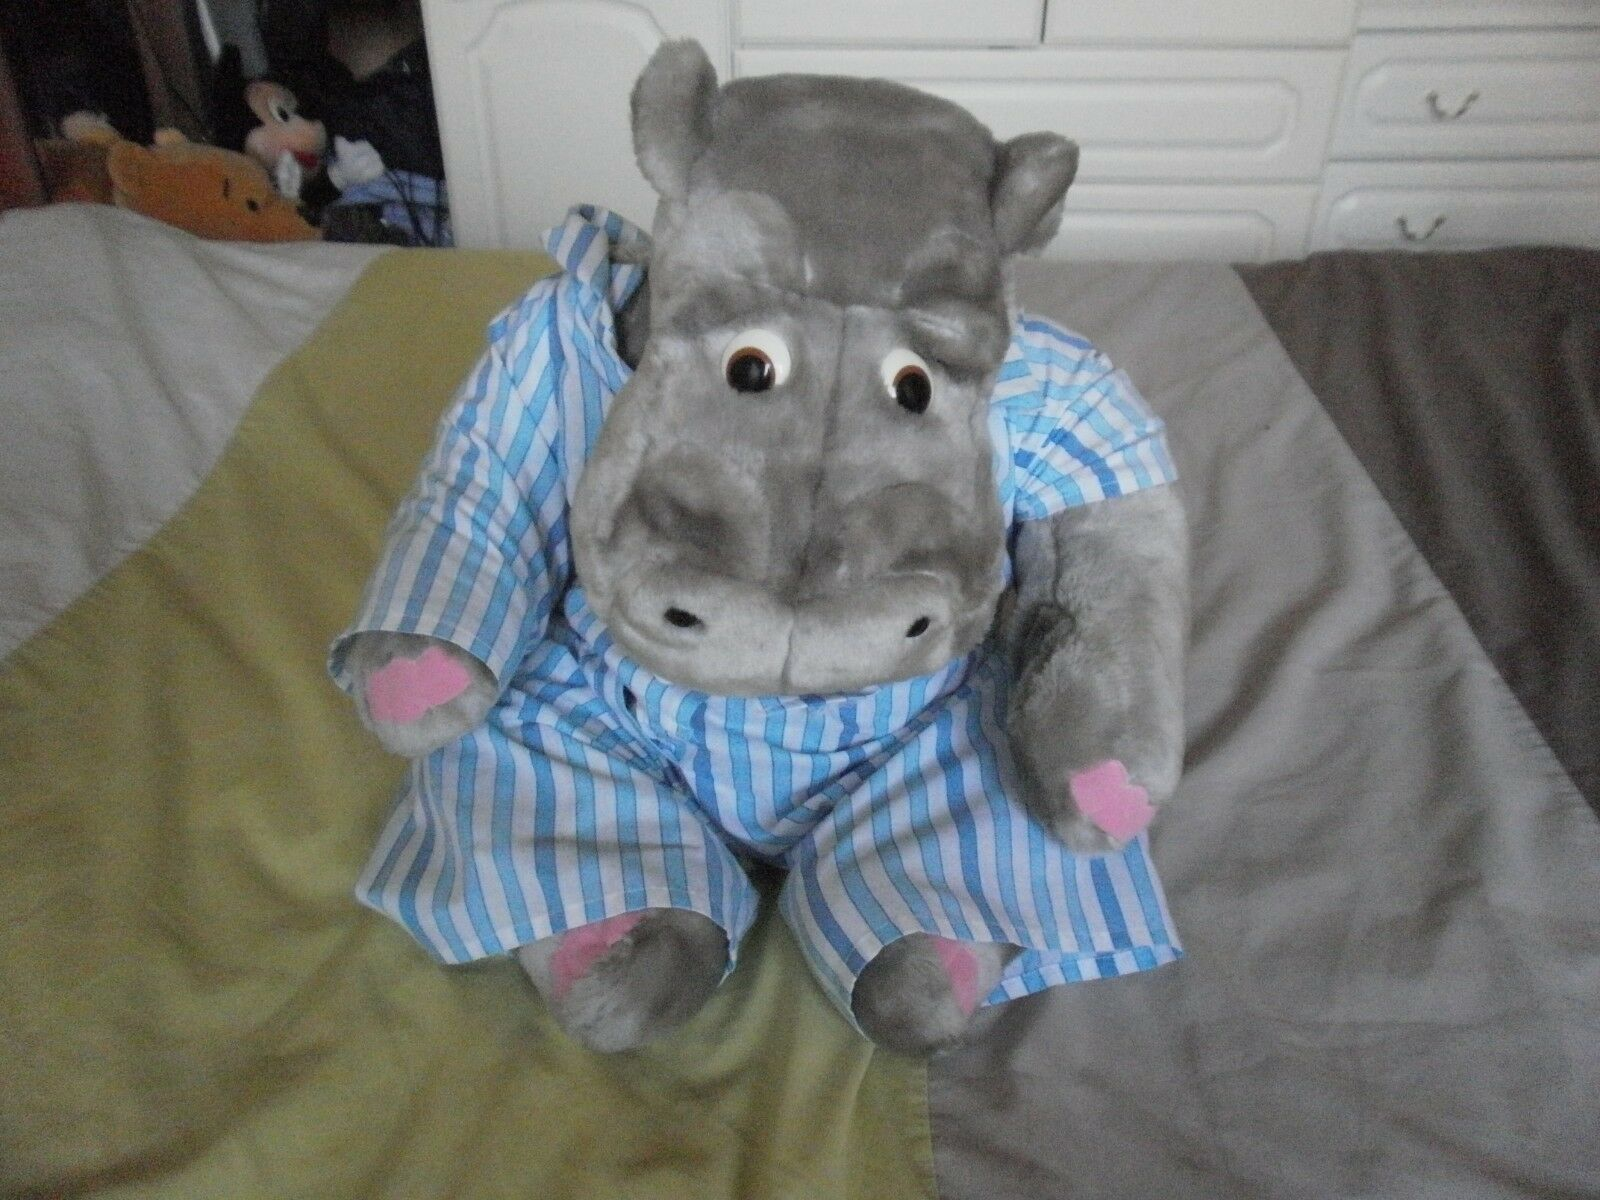 Official Tebro Toys Silentnight HIPPO soft cuddly toy large size